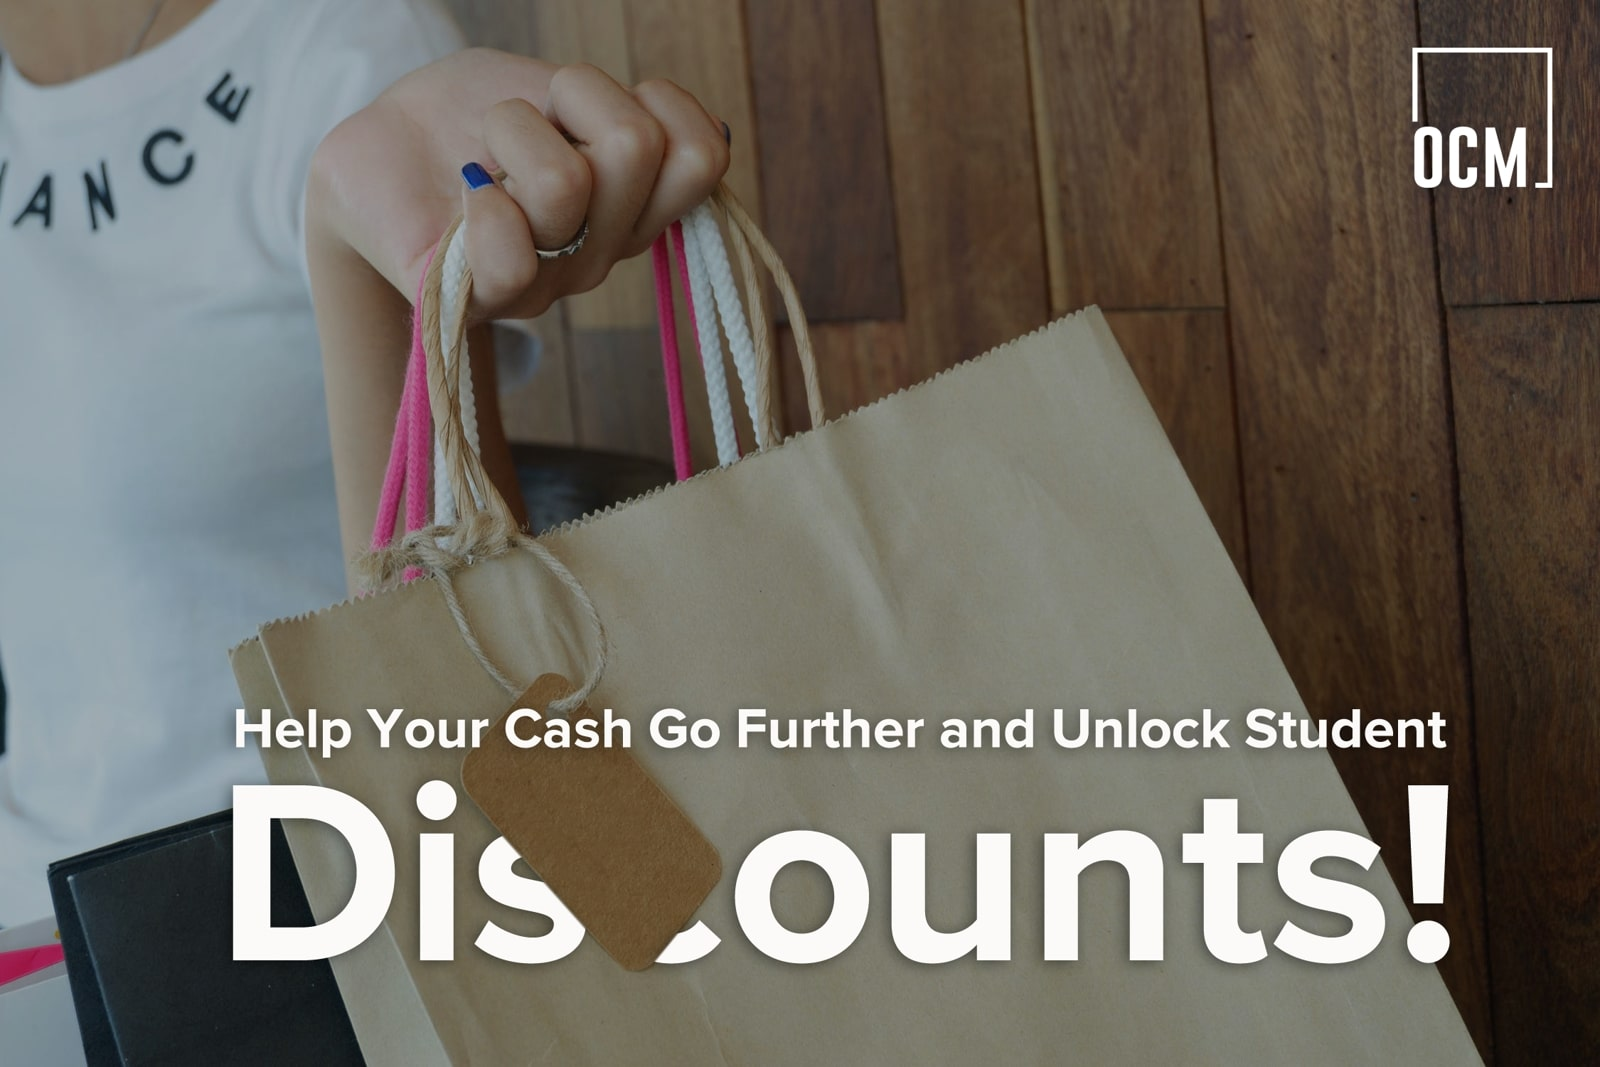 Help Your Cash Go Further And Unlock Student Discounts